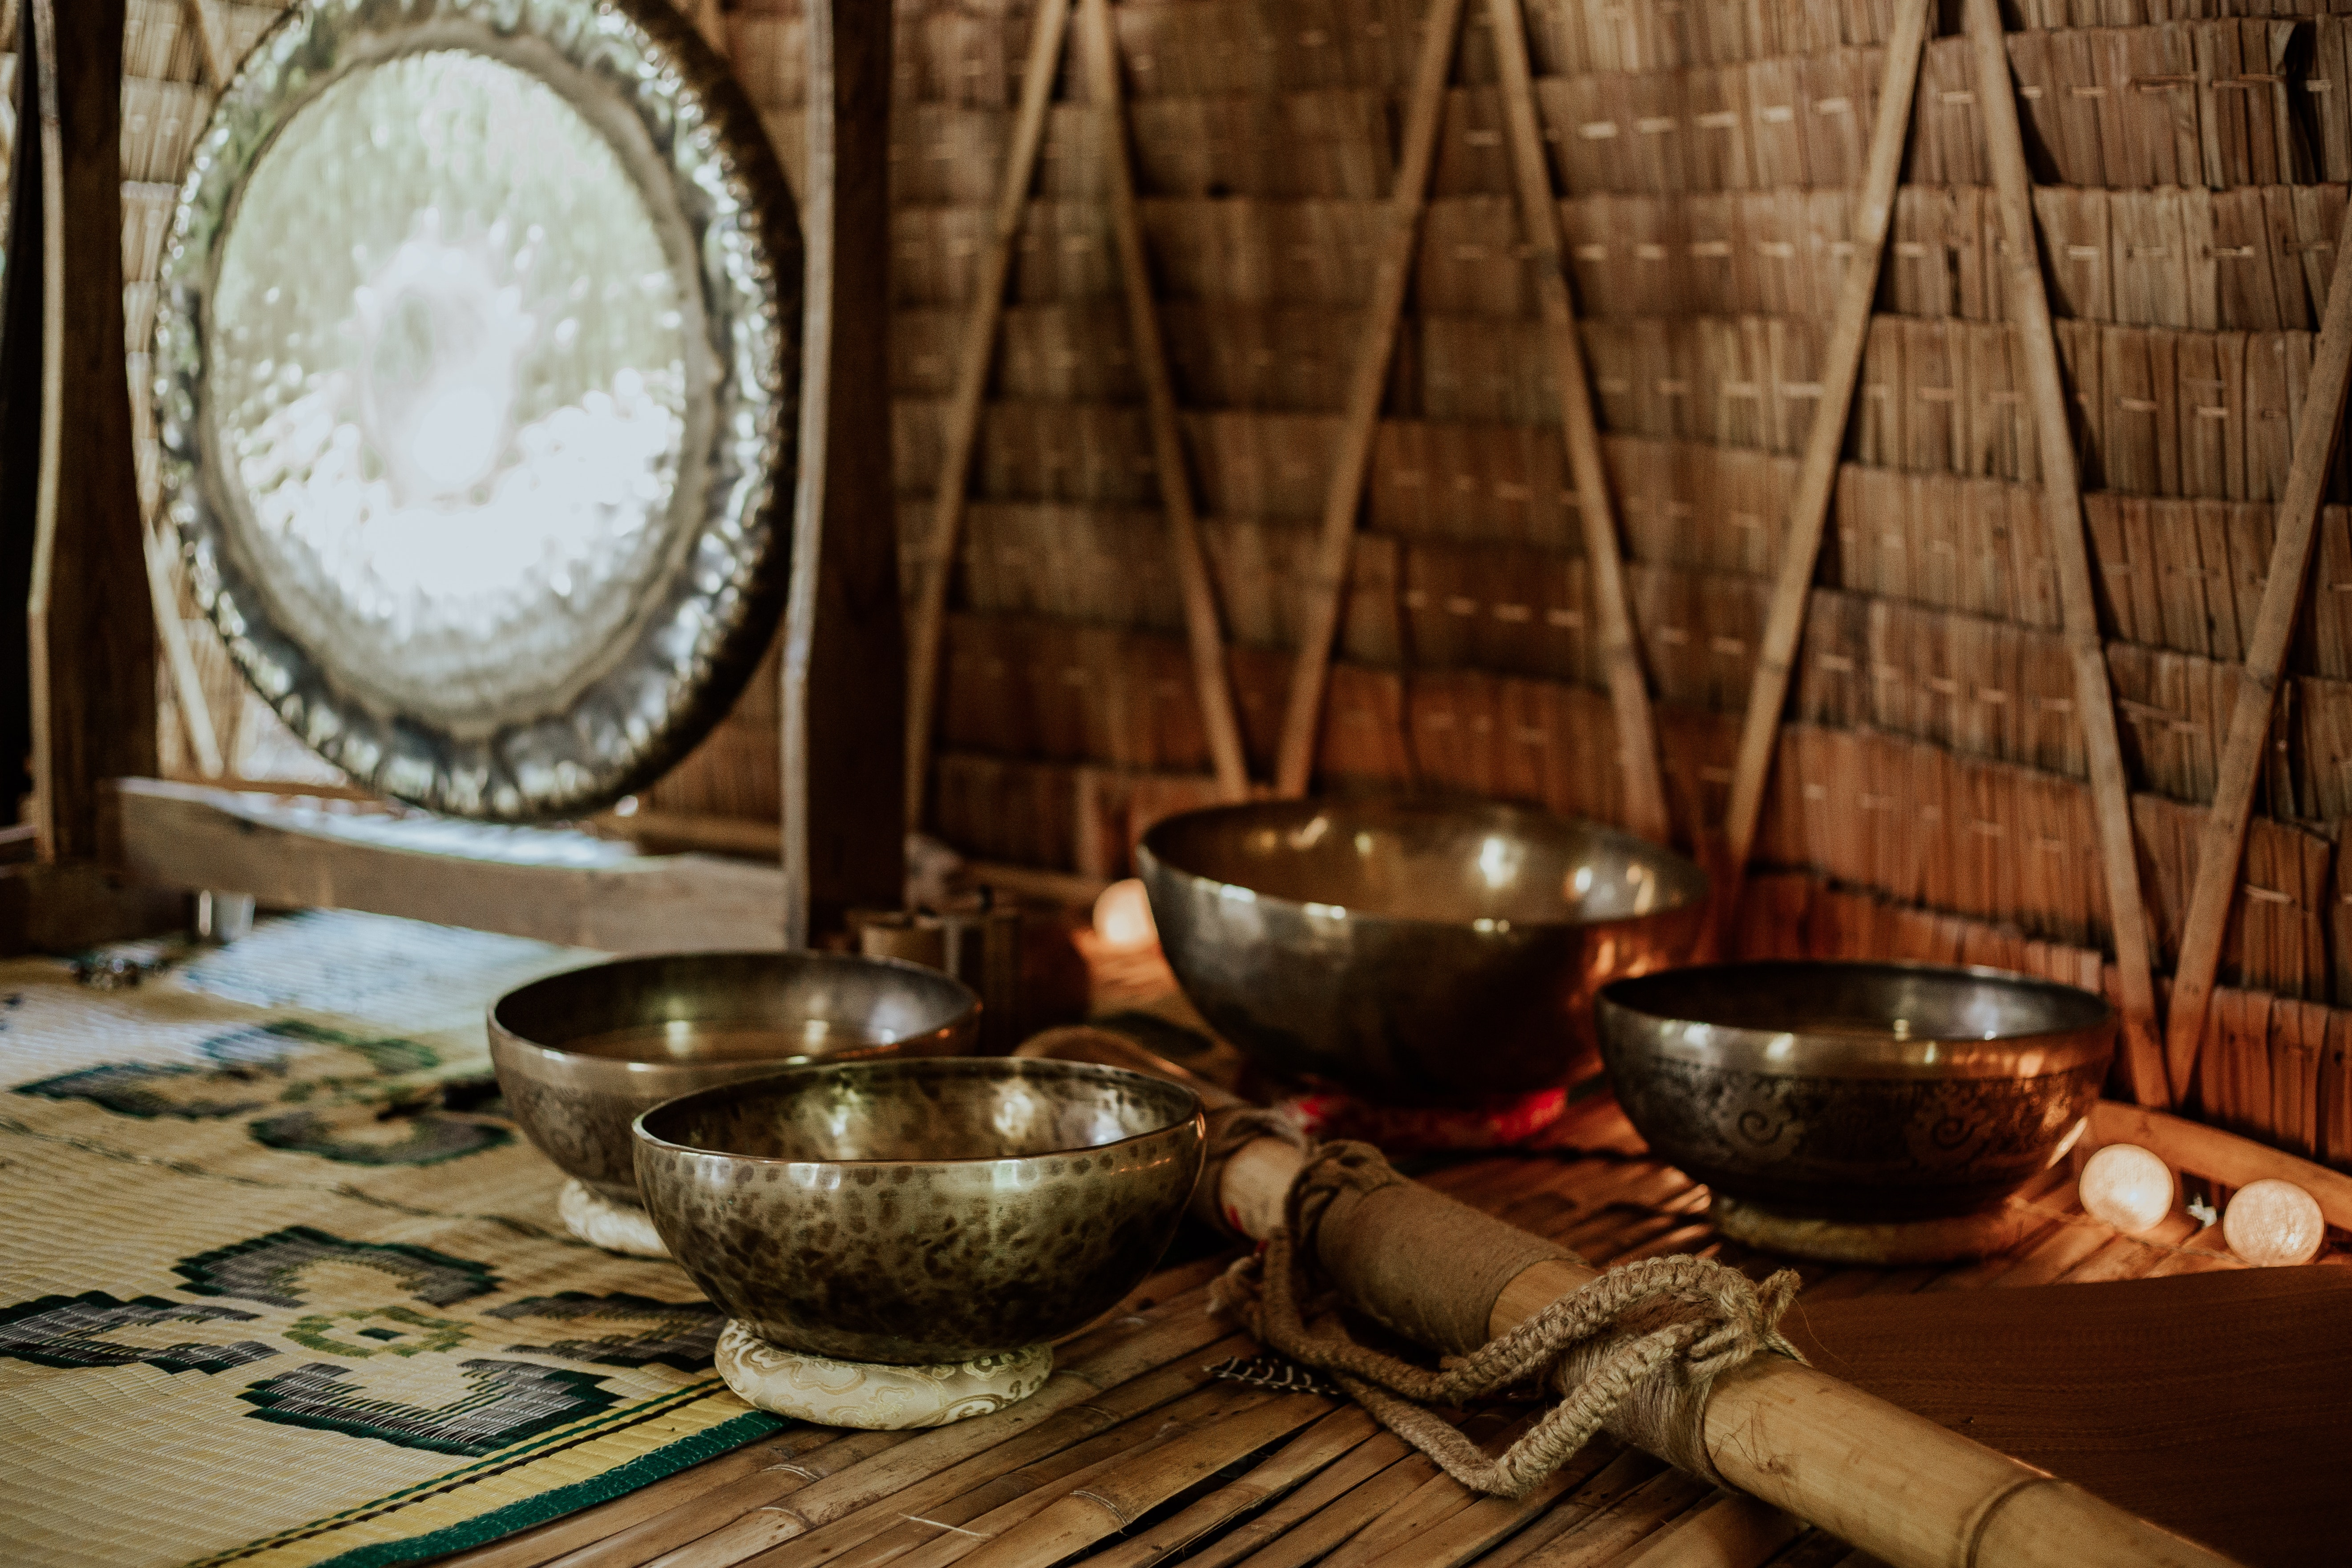 Antiques, Souvenirs To Bring Back From Thailand